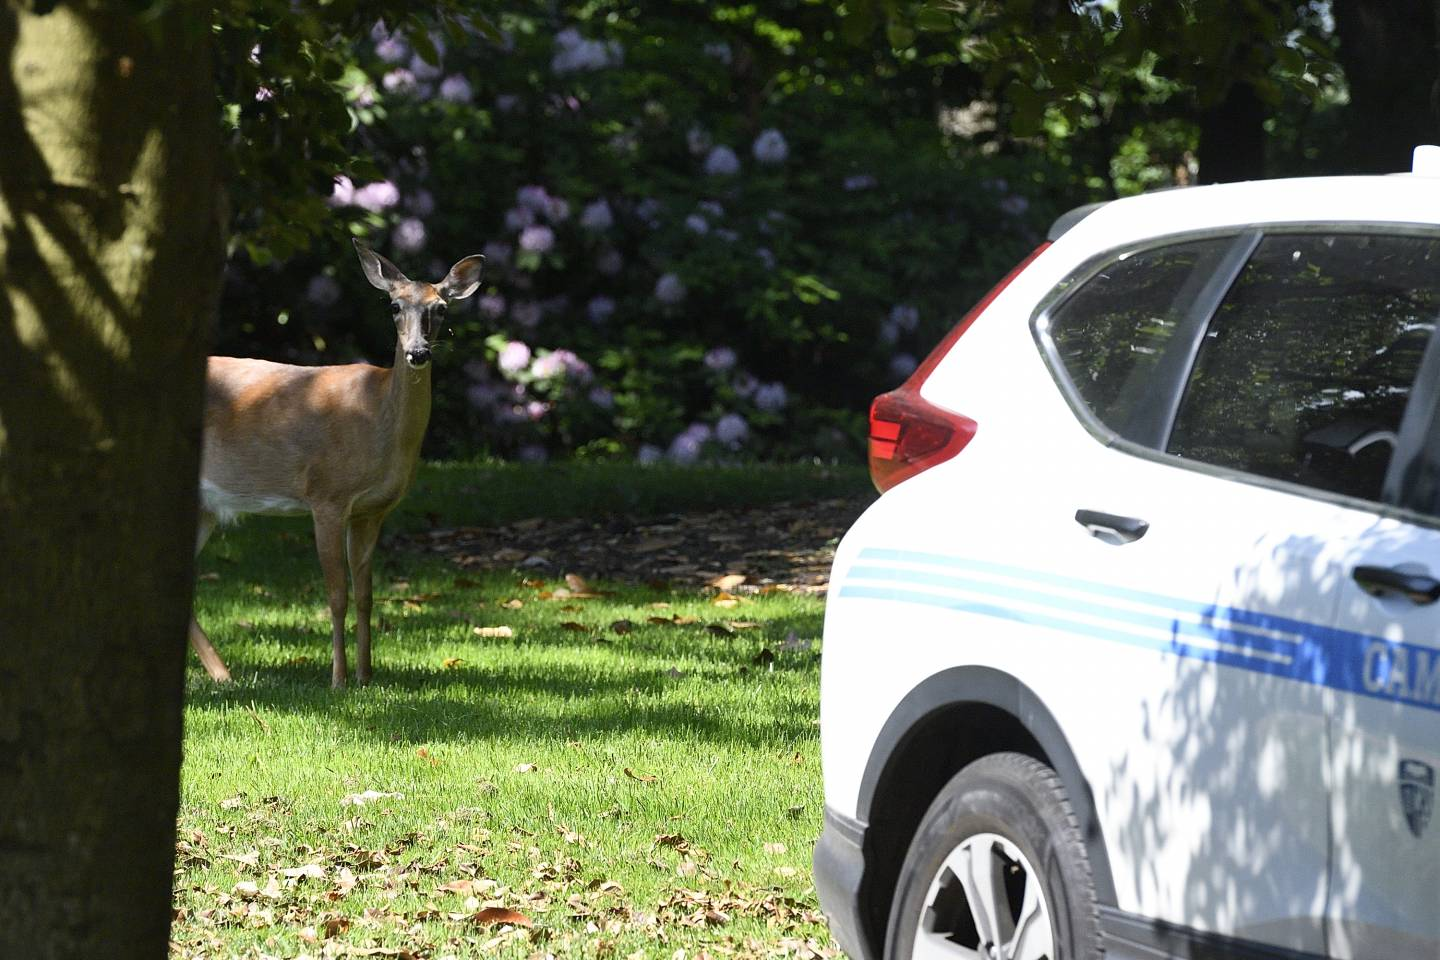 A deer is photographed on campus